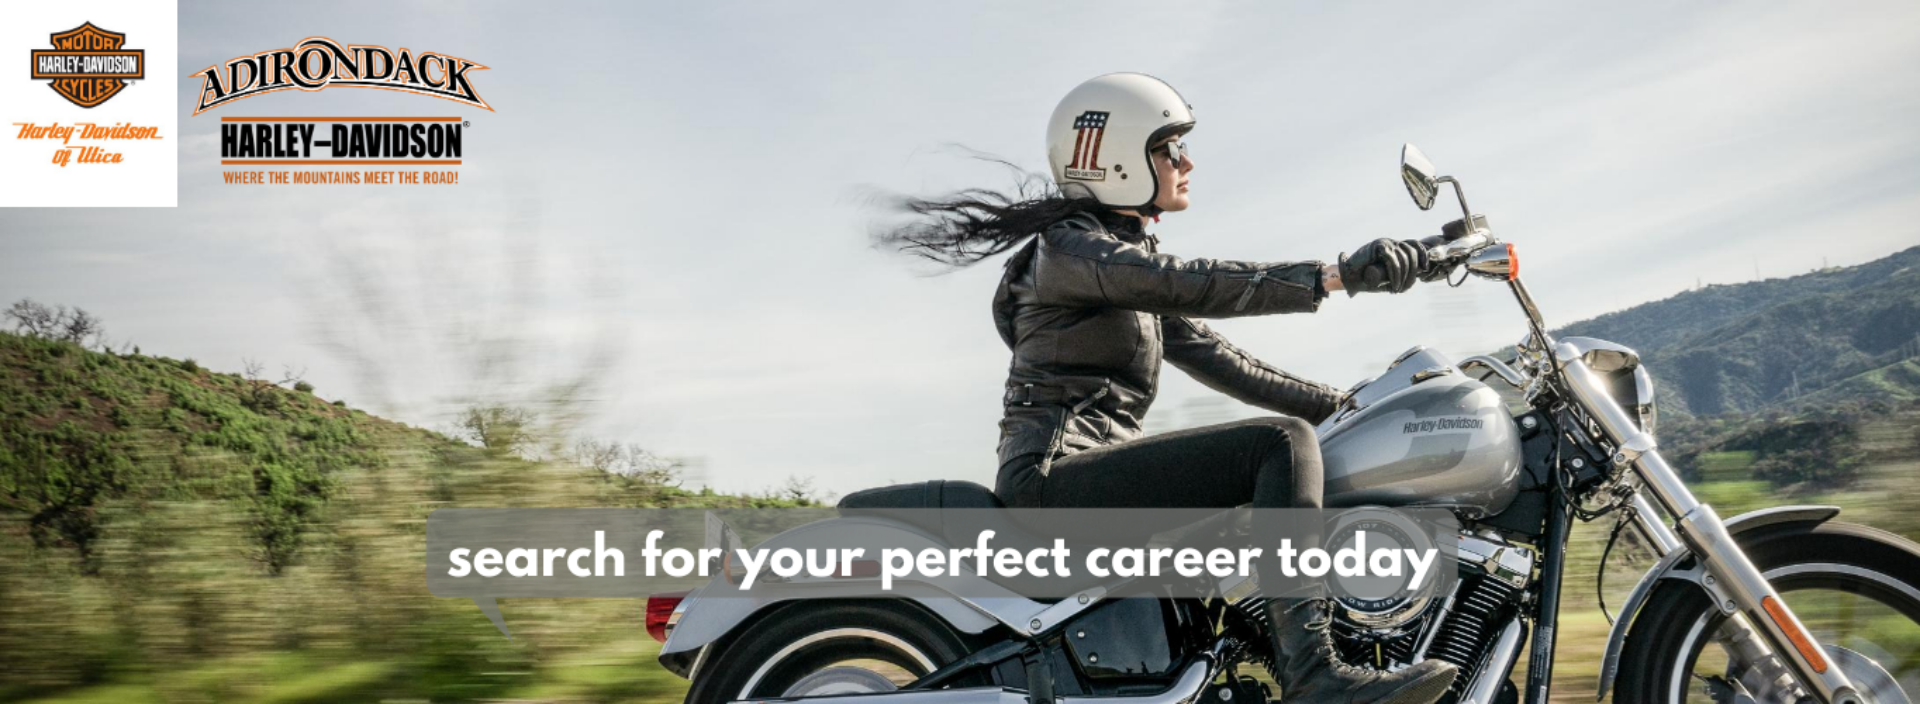 HD Motorcycle Jobs